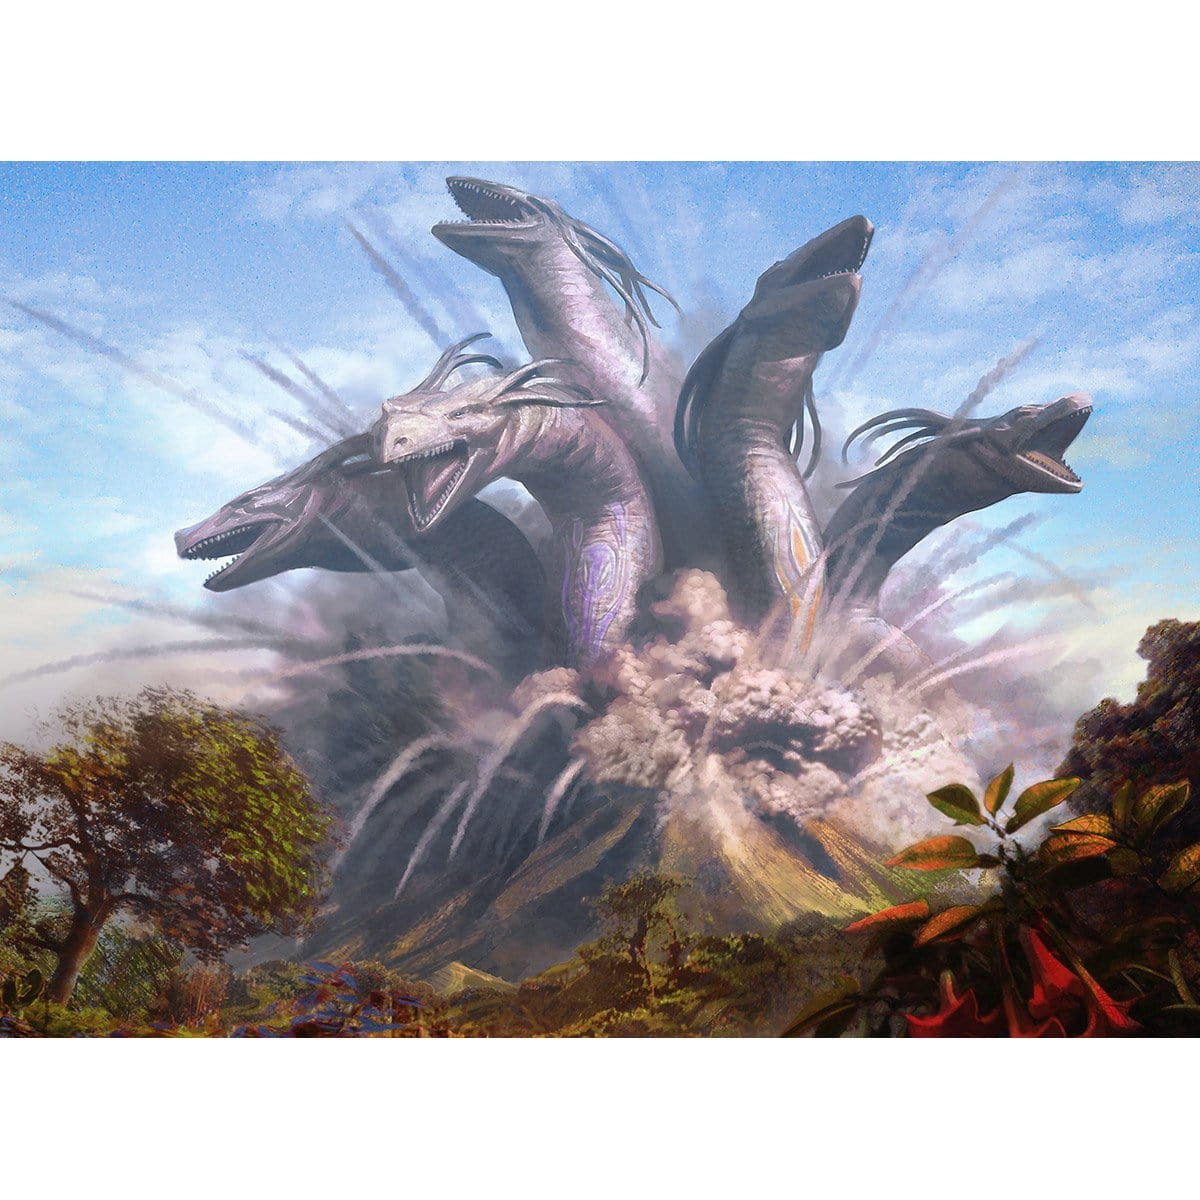 Progenitus Print - Print - Original Magic Art - Accessories for Magic the Gathering and other card games